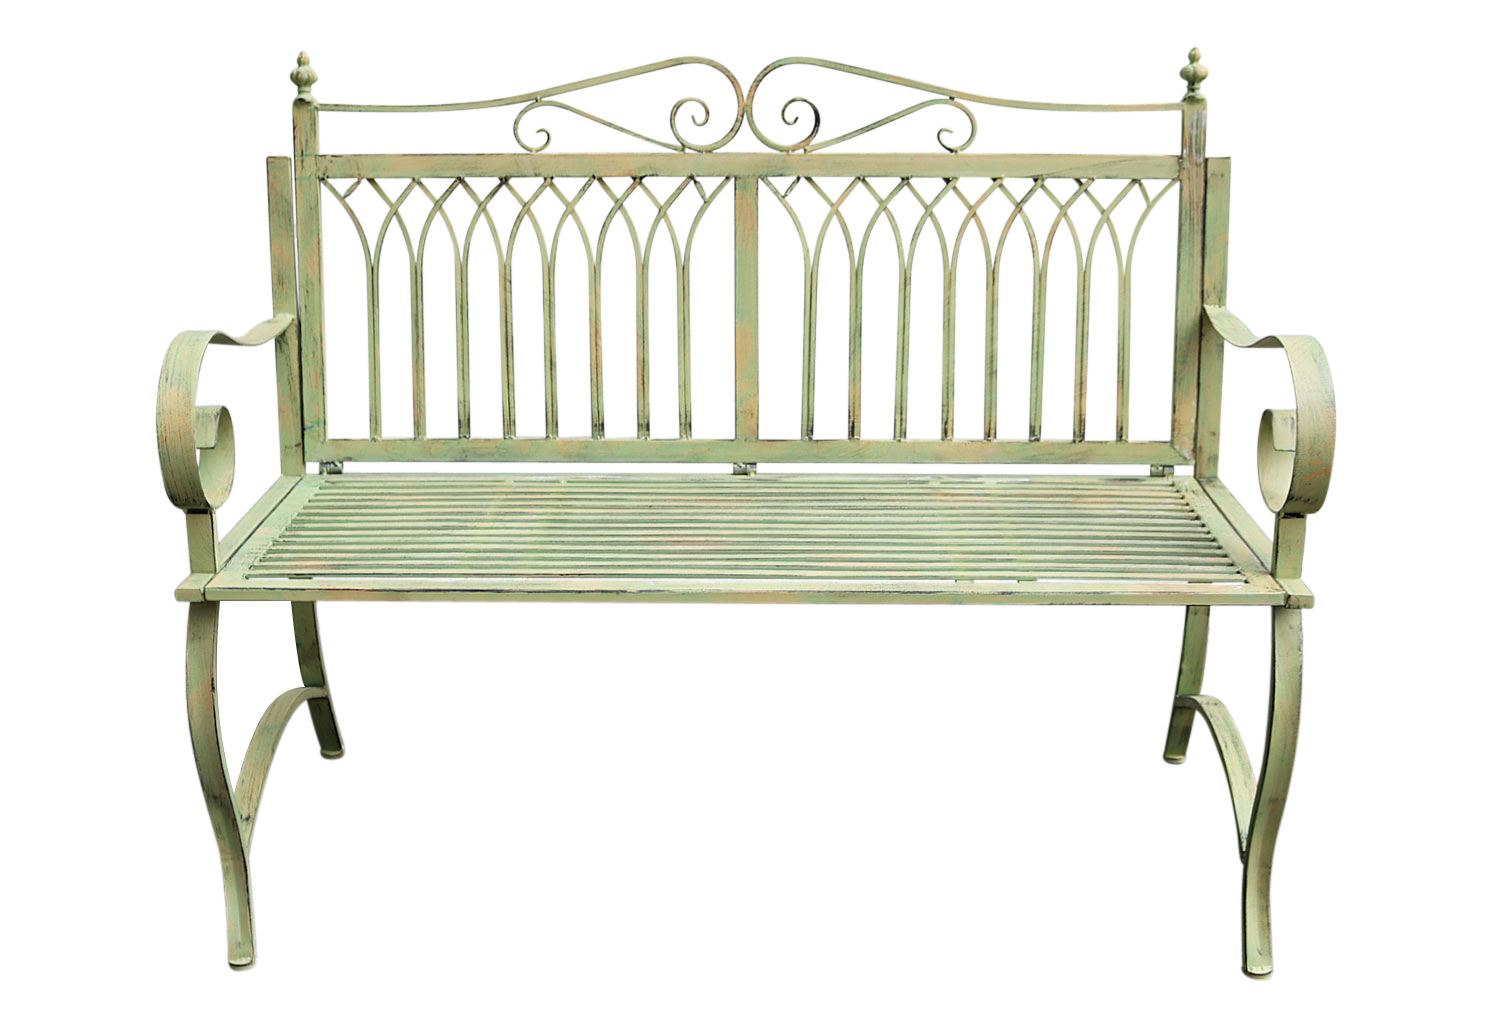 Gartenmetall.de Antique Style Garden Bench Metal Iron Green Furniture Park Nostalgic 119x95cm